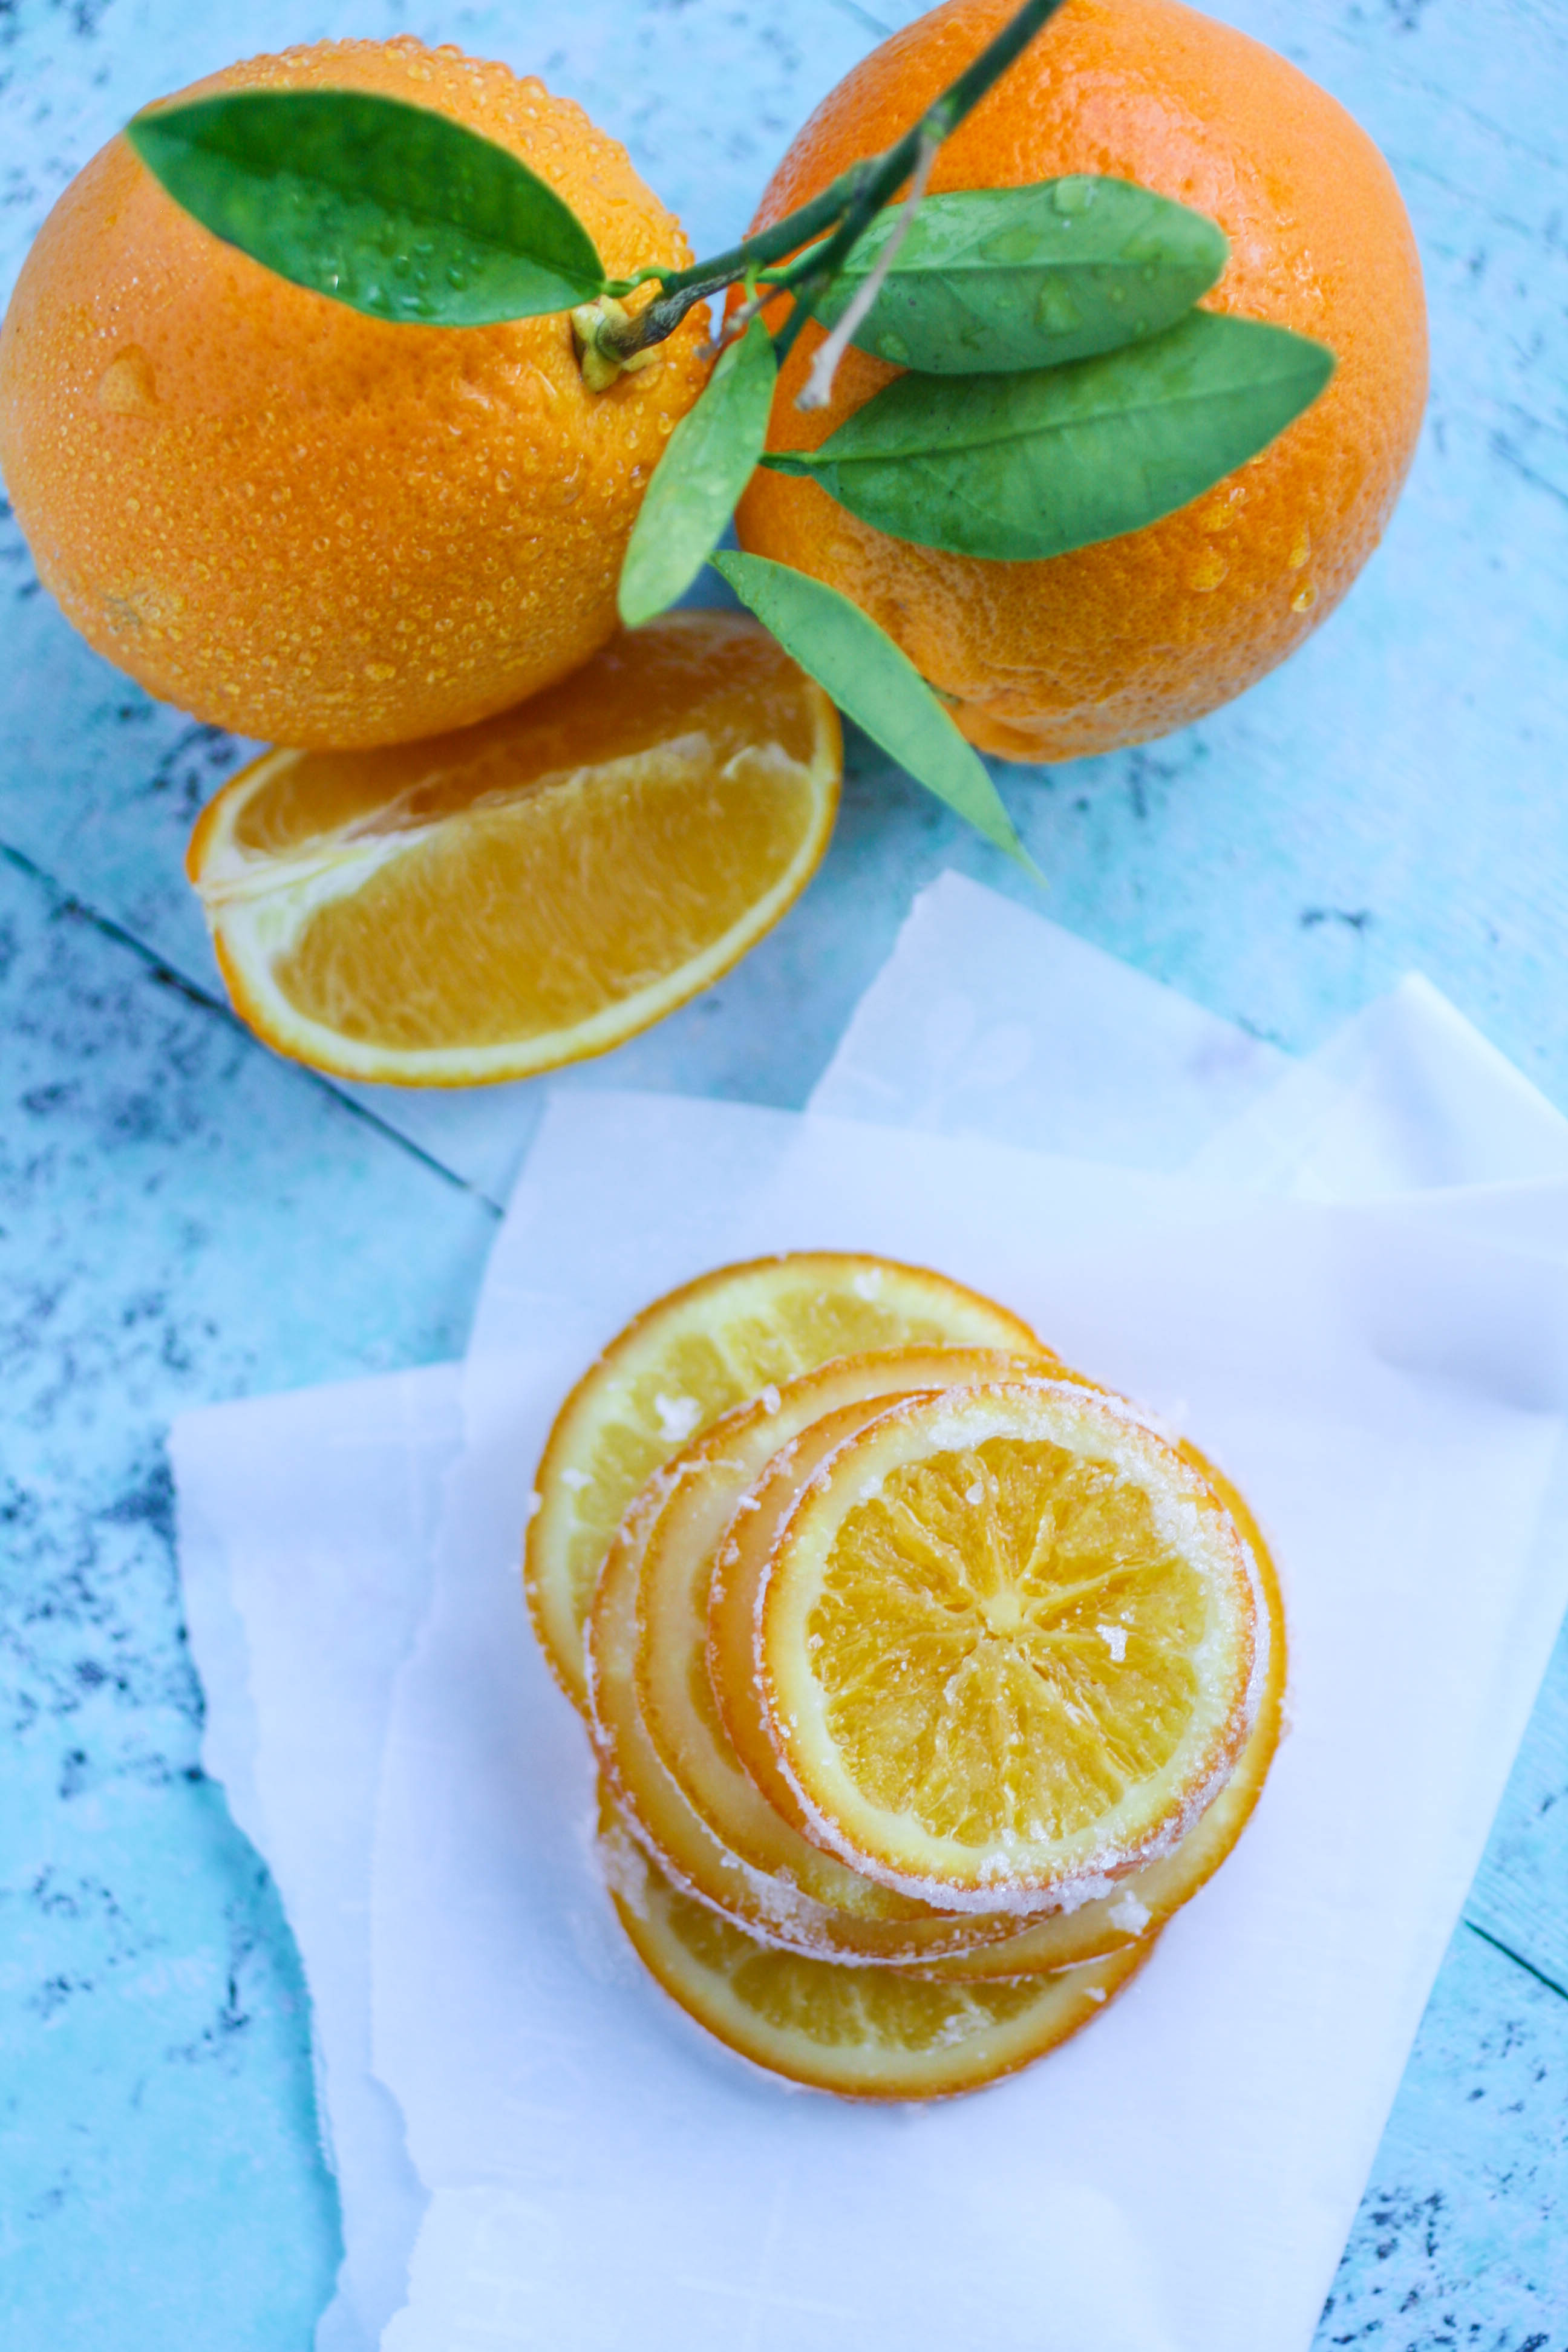 Candied Orange Slices are a lovely and bright treat for any day. You'll love these candied oranges for a special treat.